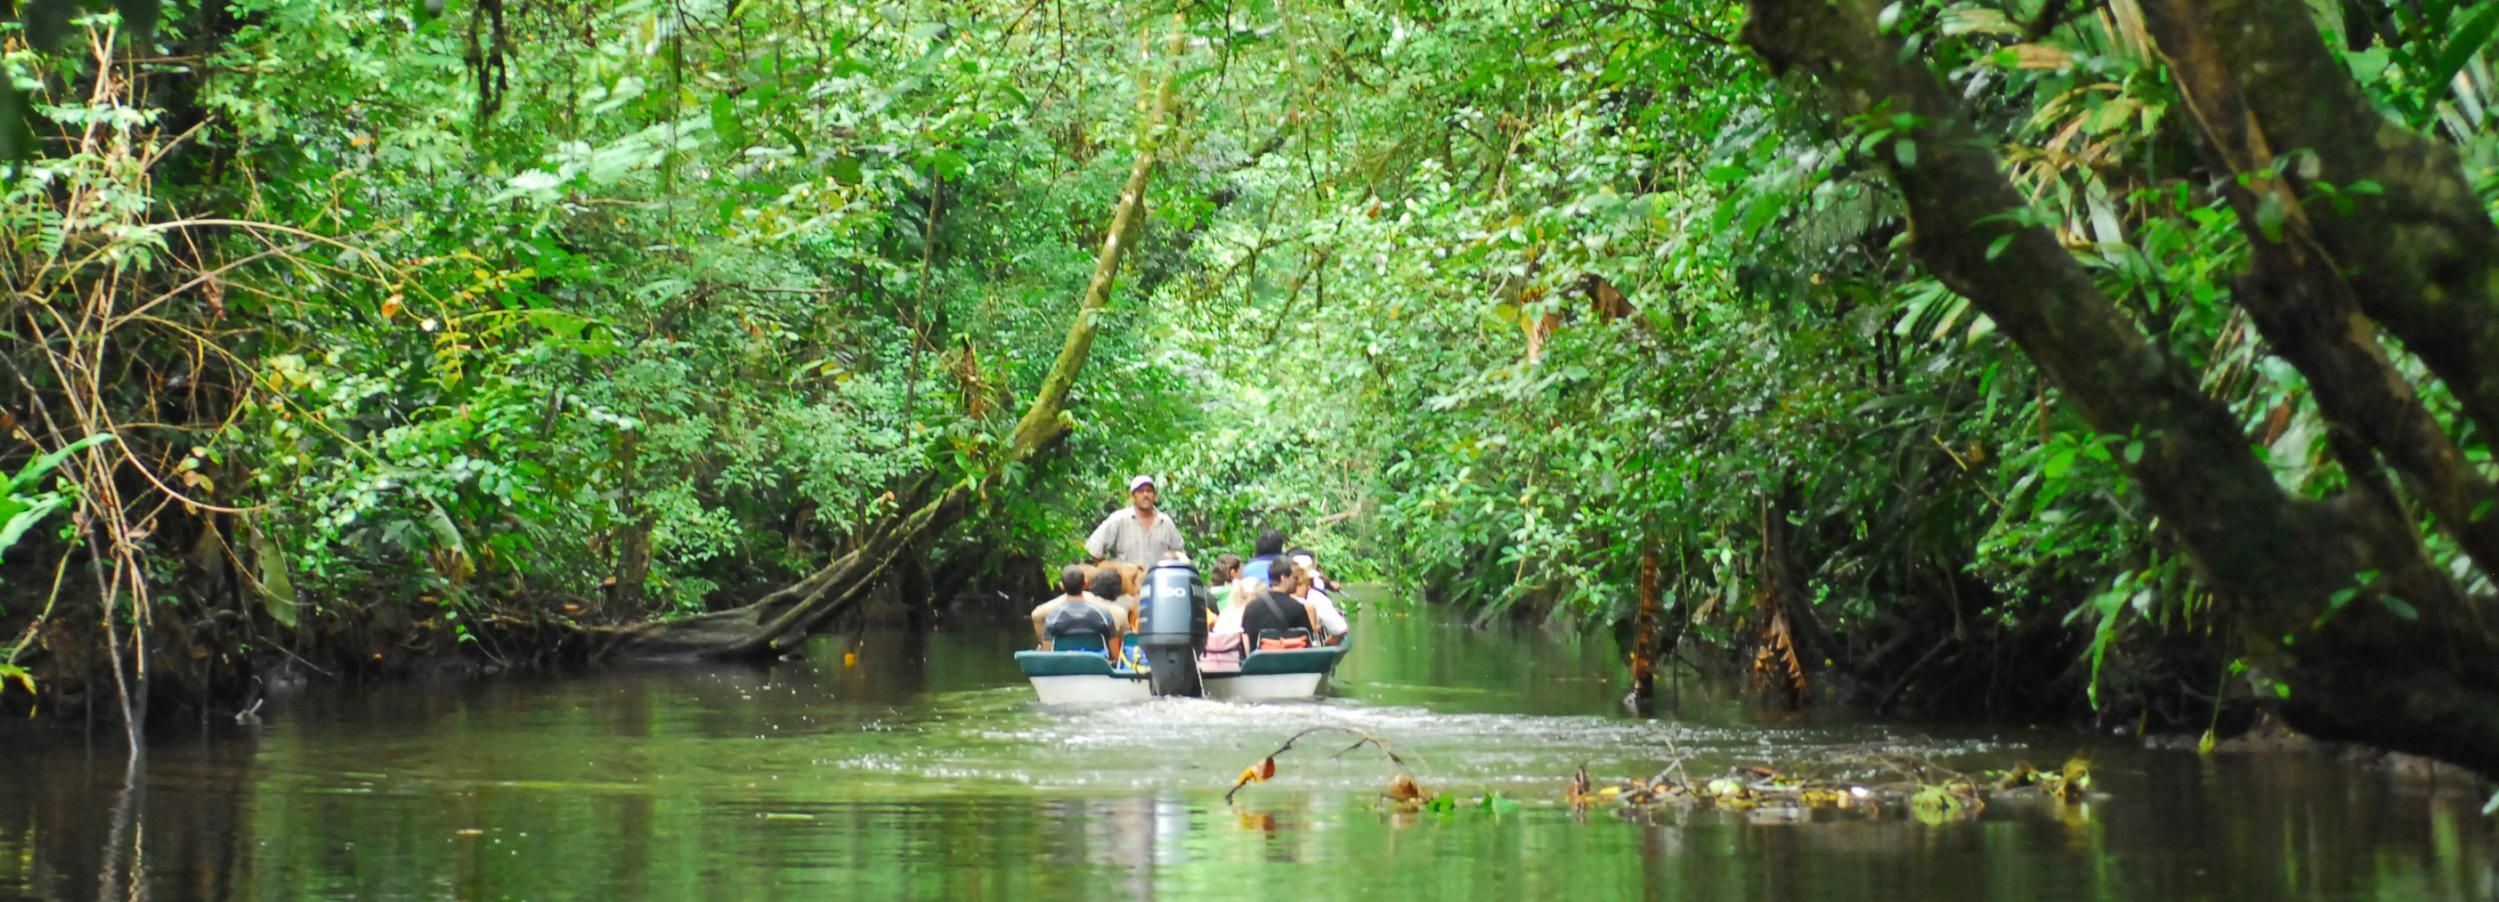 San Jose: Tortuguero Park Day Tour with Breakfast & Lunch